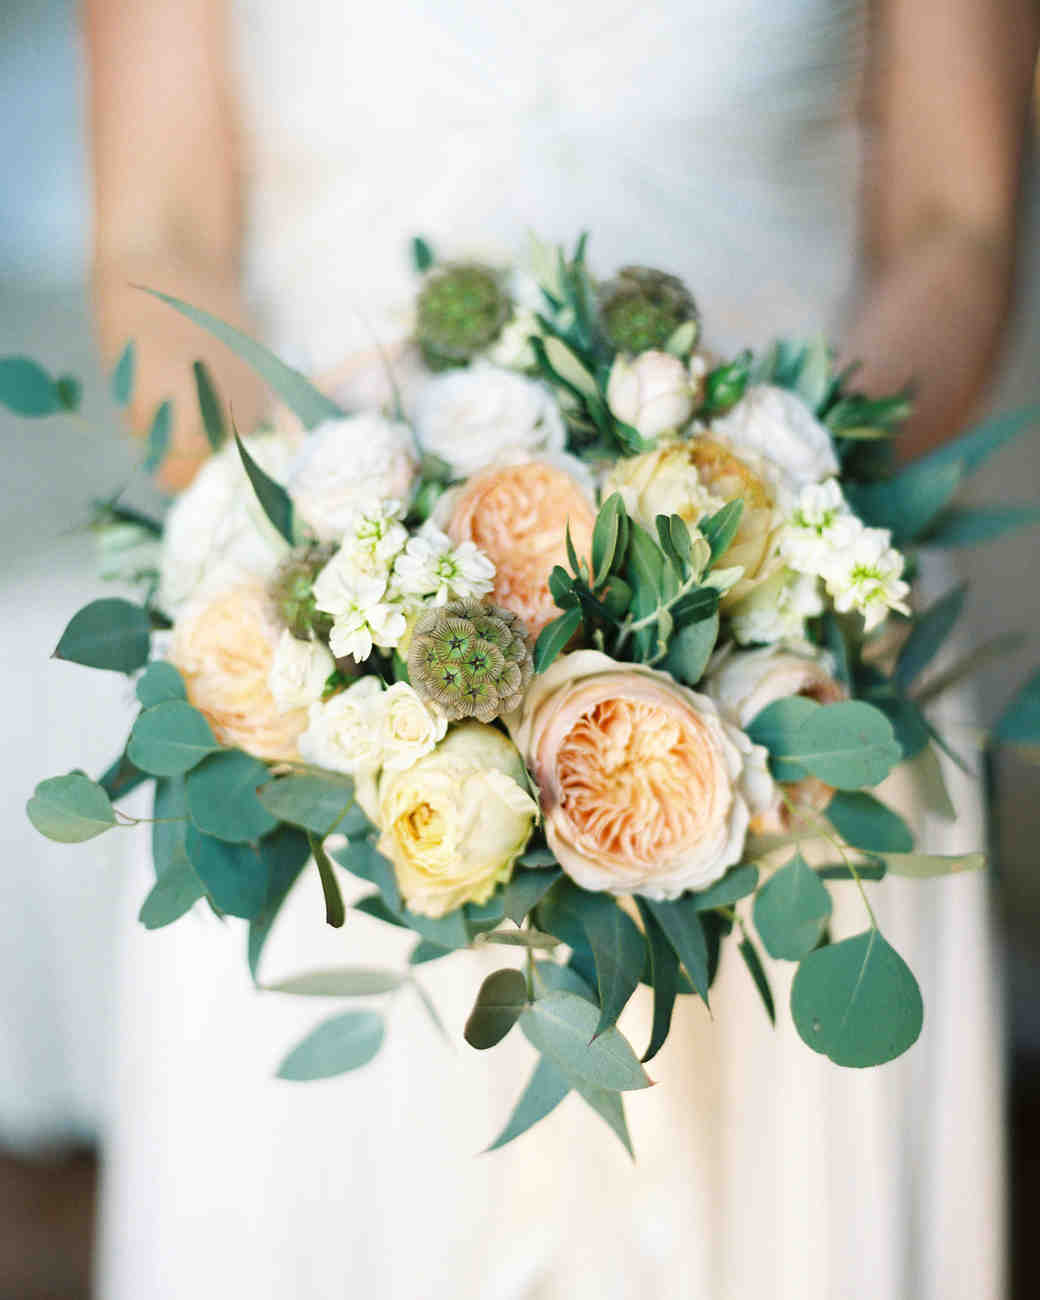 6 Spring Flowers You Need For Your Wedding Bouquet